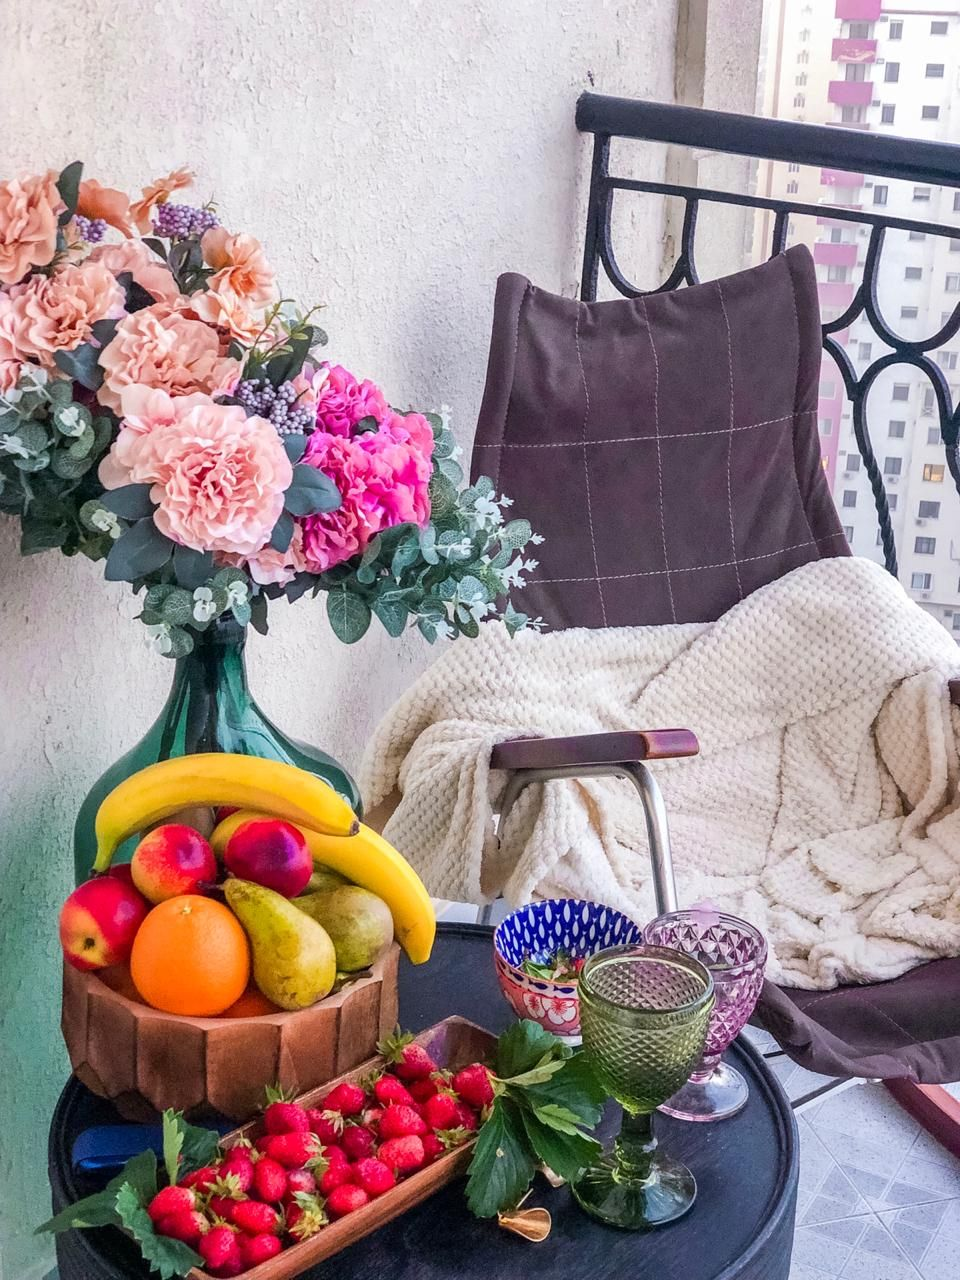 Balcony for summer #coYbymadi #cozydecor #cozydecorations #balcony #balconydecoration #cozy